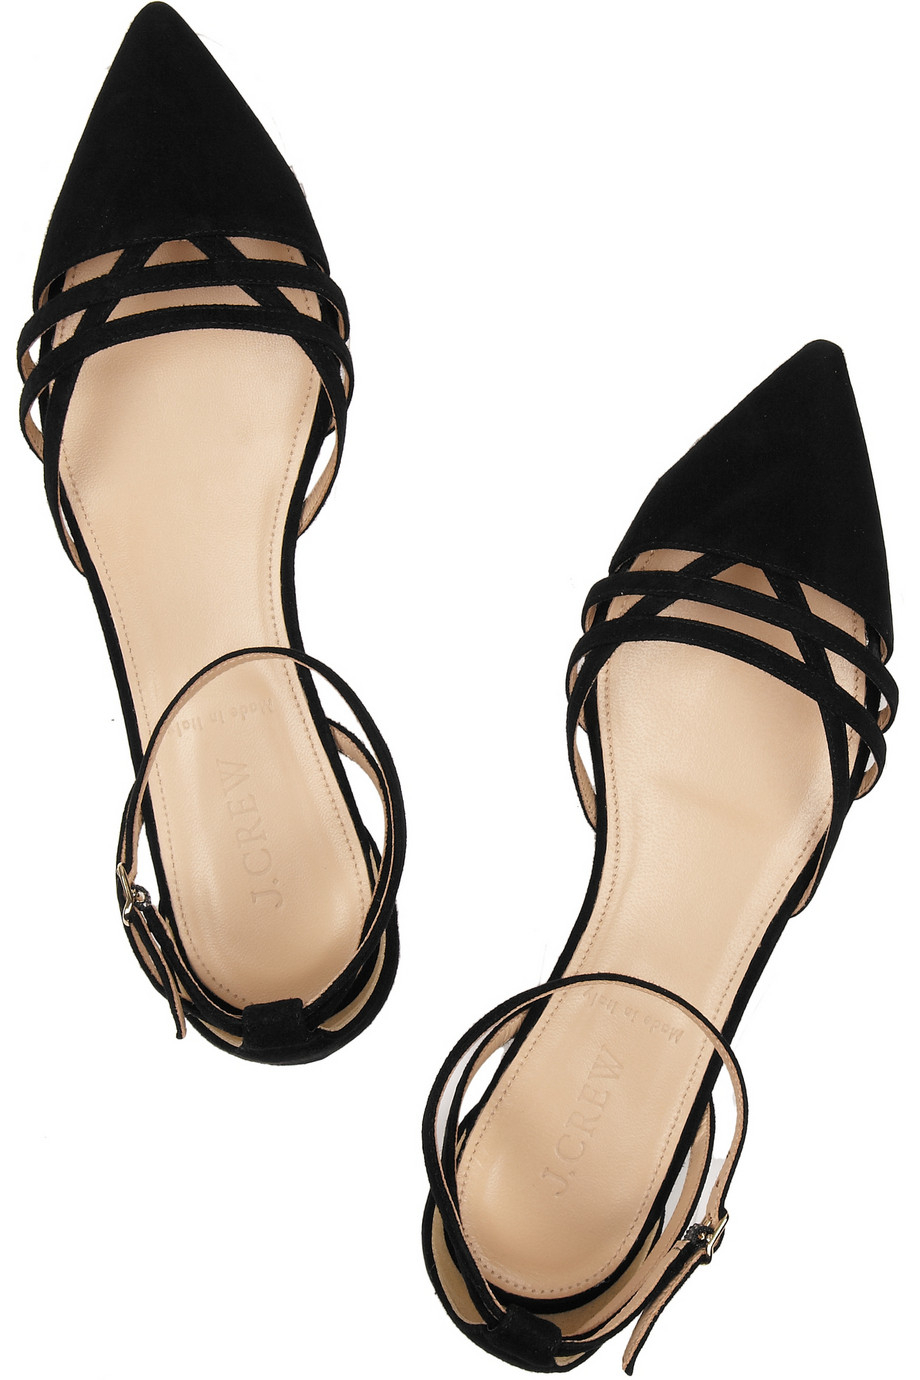 Nordstrom Flat Pointy Shoes